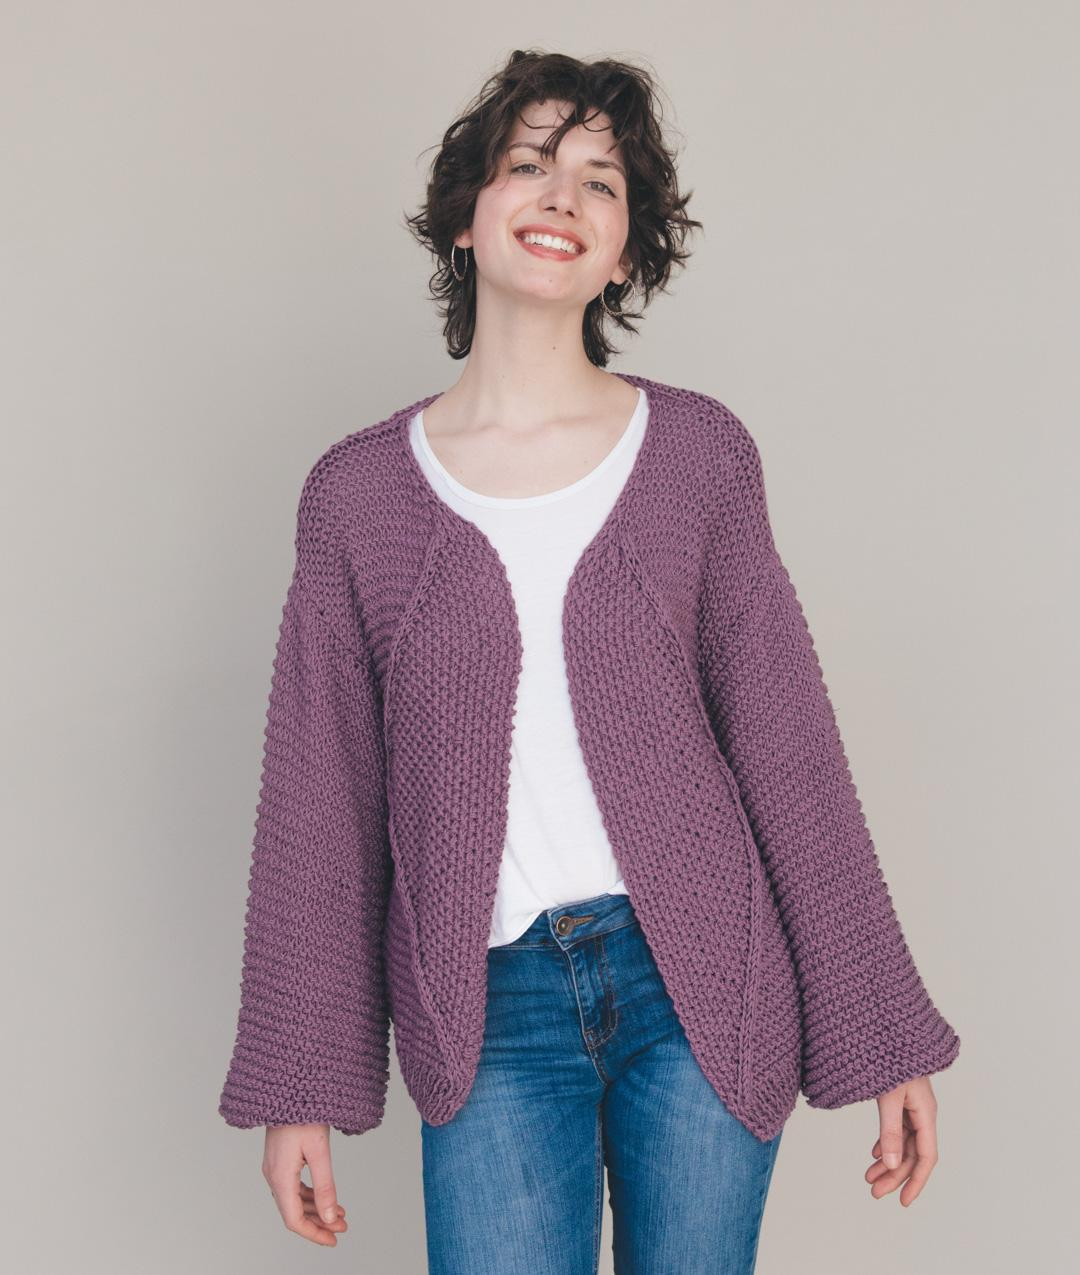 The Cardigans Collection - NEW IN - Lavender Cardi - 1